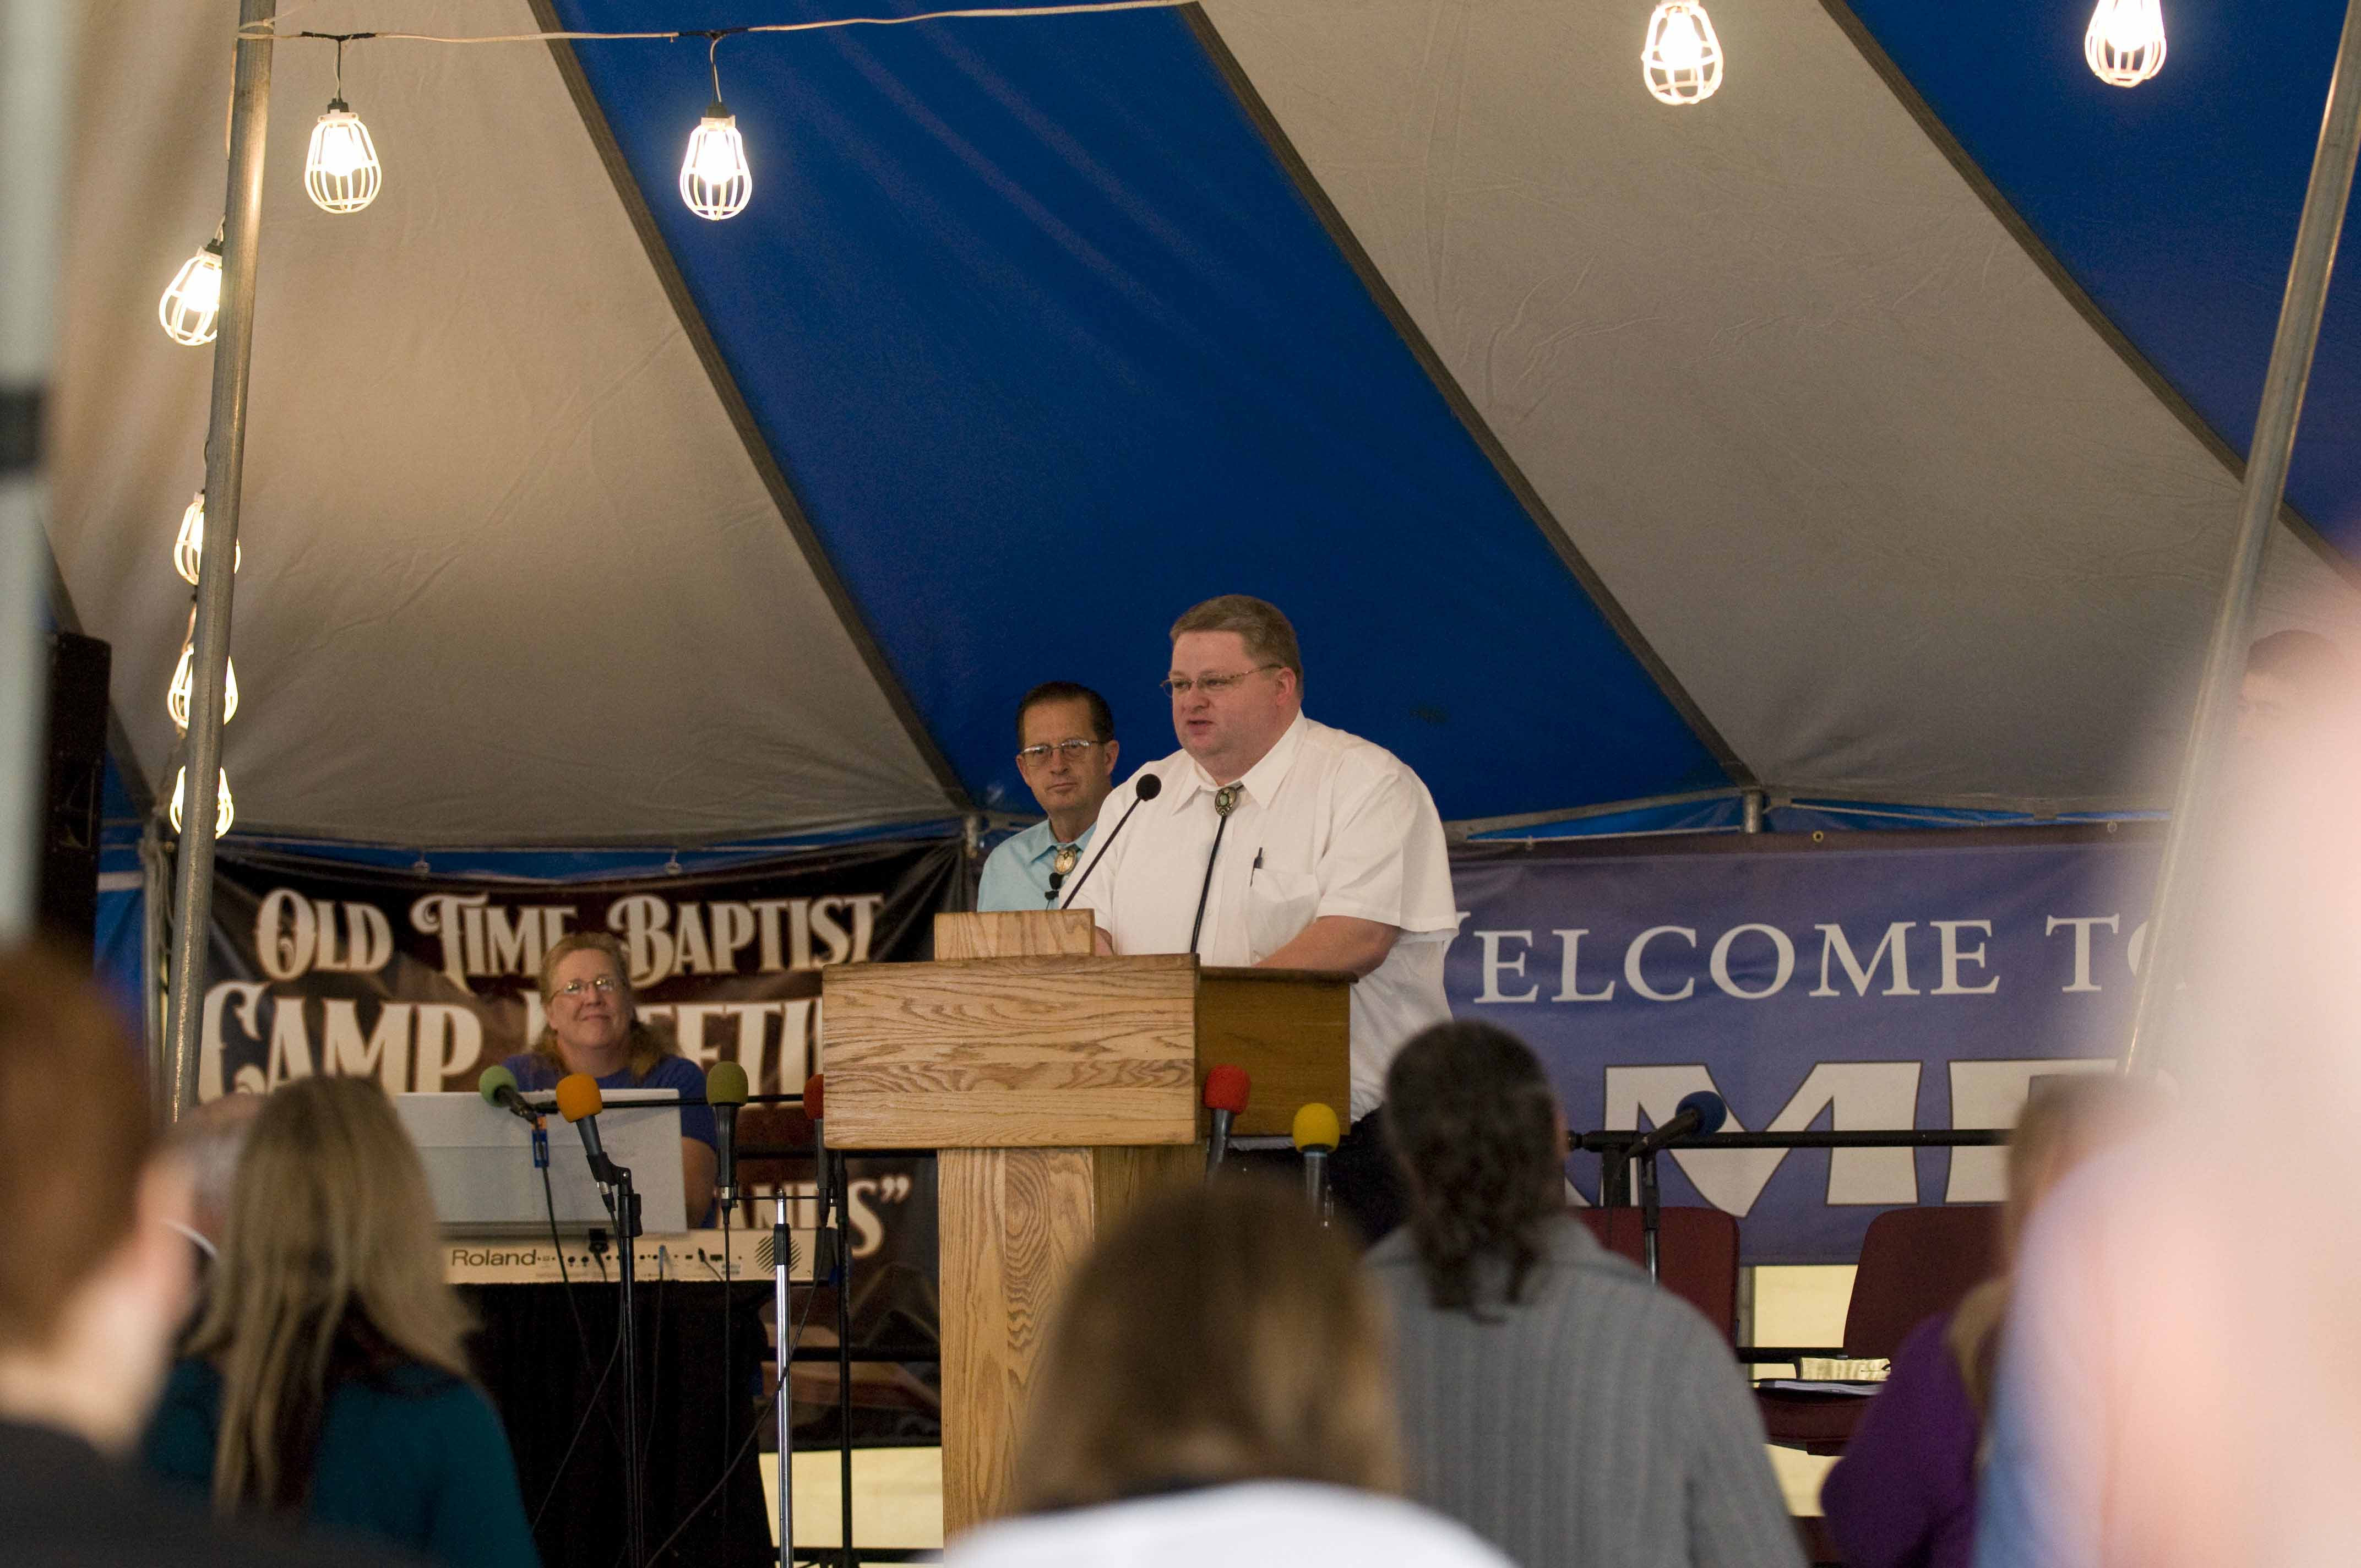 Camp_meeting_2011_19